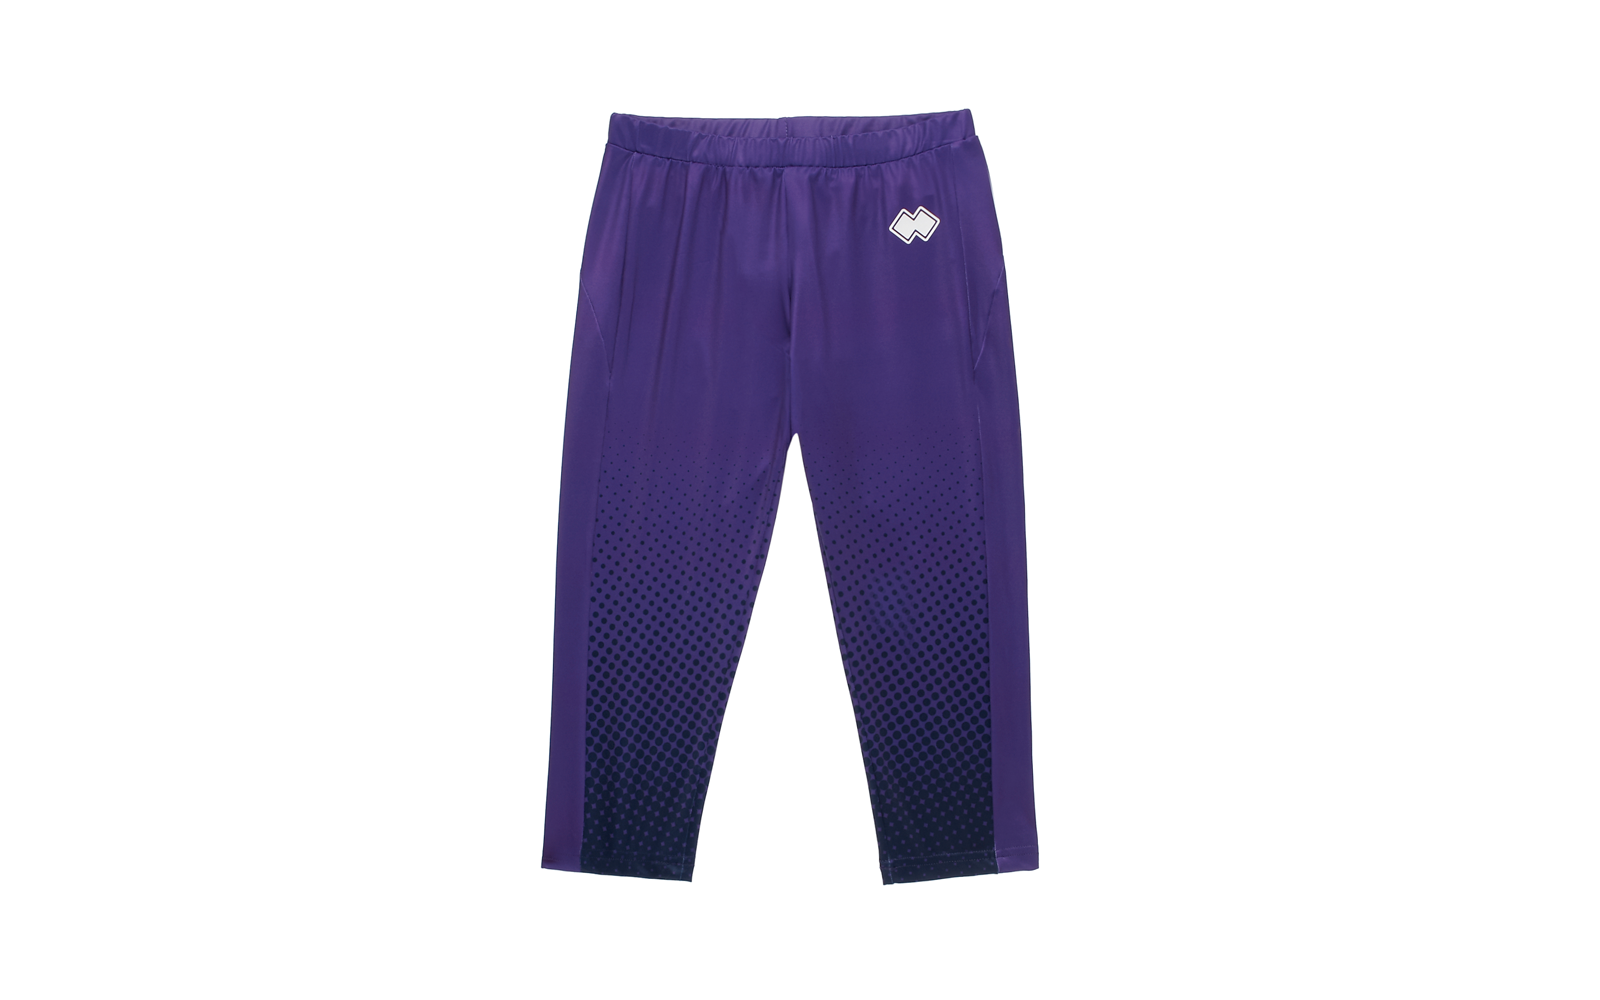 ERREA' REPUBLIC leggings corti in tessuto tecnico viola (euro 27,90) www.it.errea.com